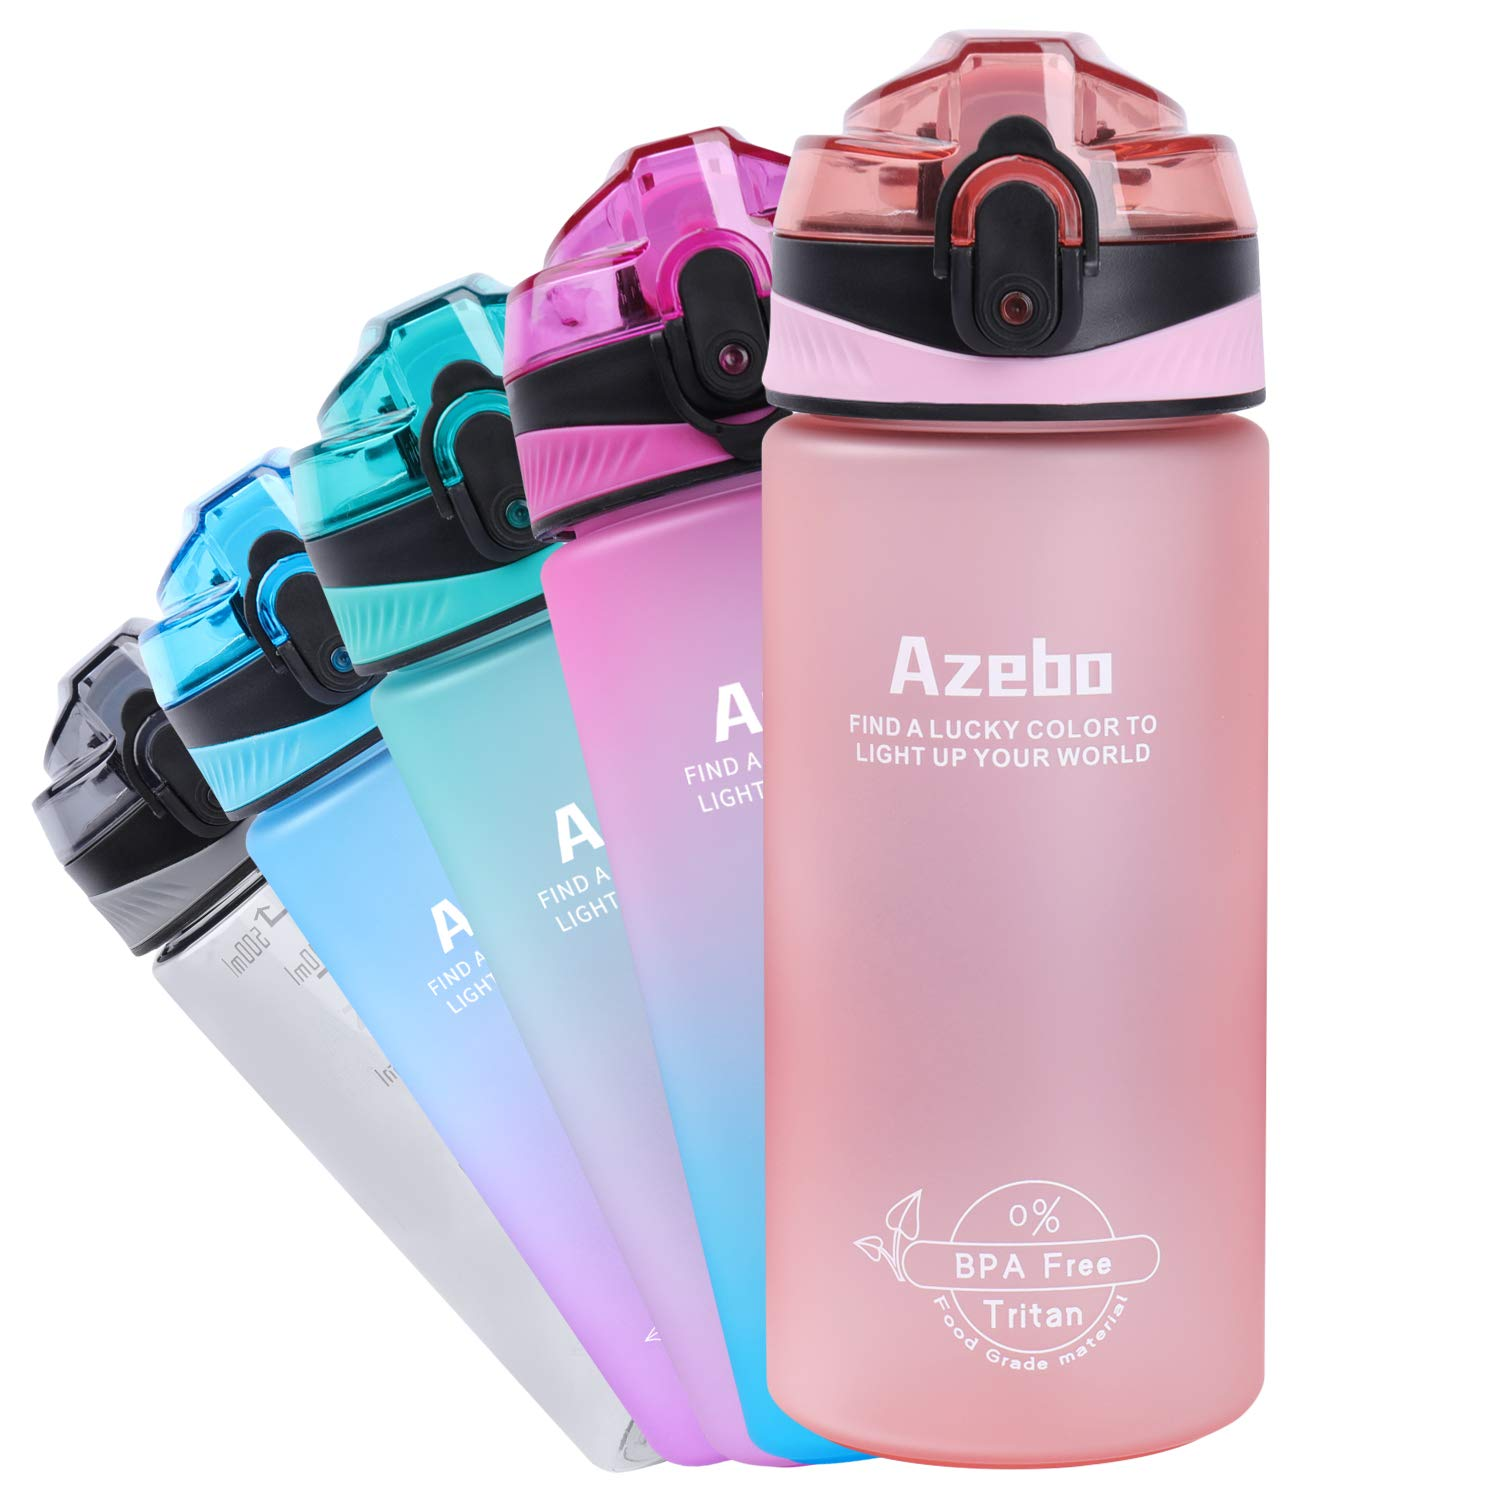 Azebo 18oz Small Water Bottle with Time Marker To Drink & Removable Strainer Infuser Tritan BPA Free Non-Toxic 500ml for Fitness Sports Outdoors and Office Mint Pink